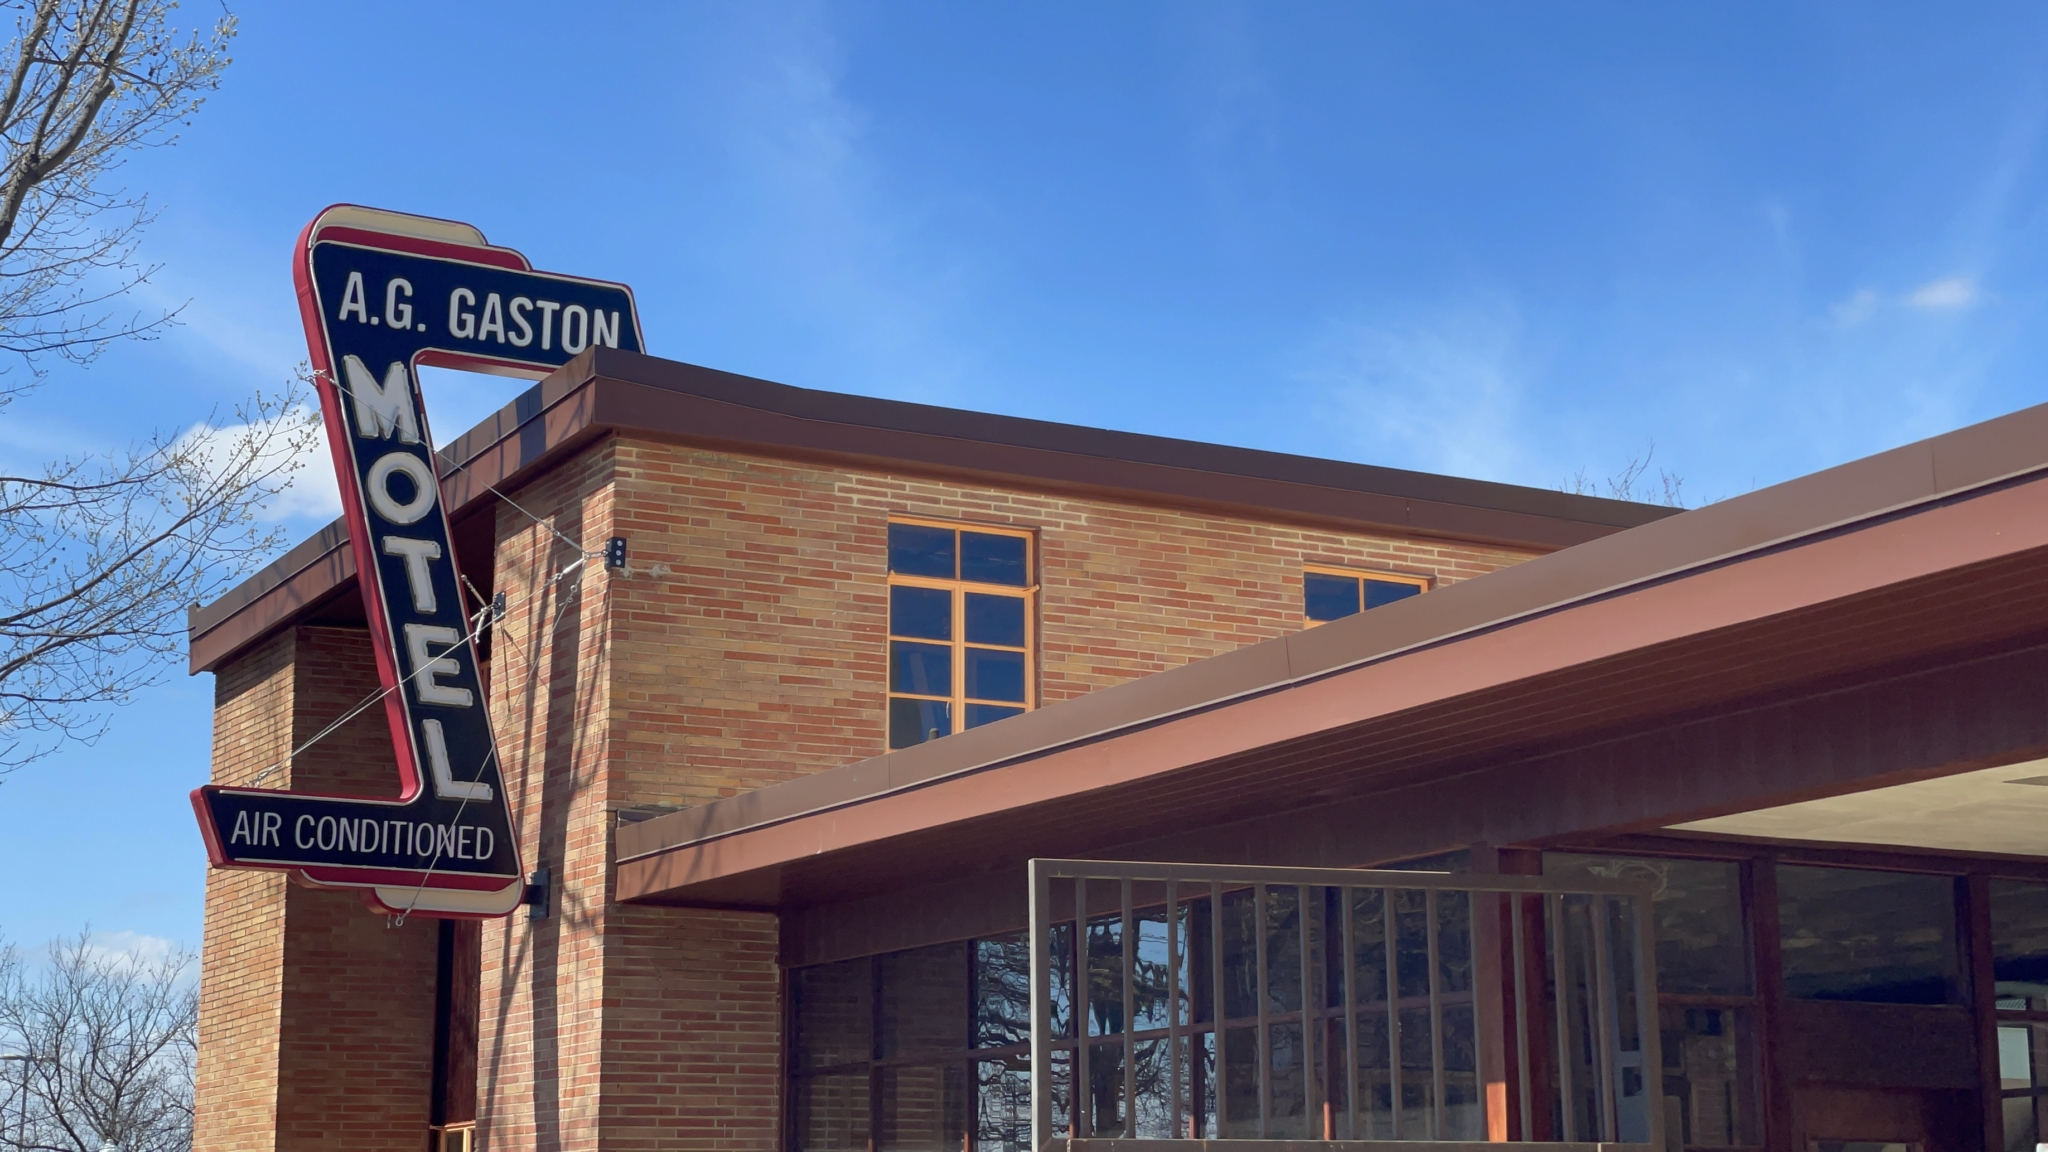 Mellon Foundation gifts .1M to help restore A.G. Gaston Motel